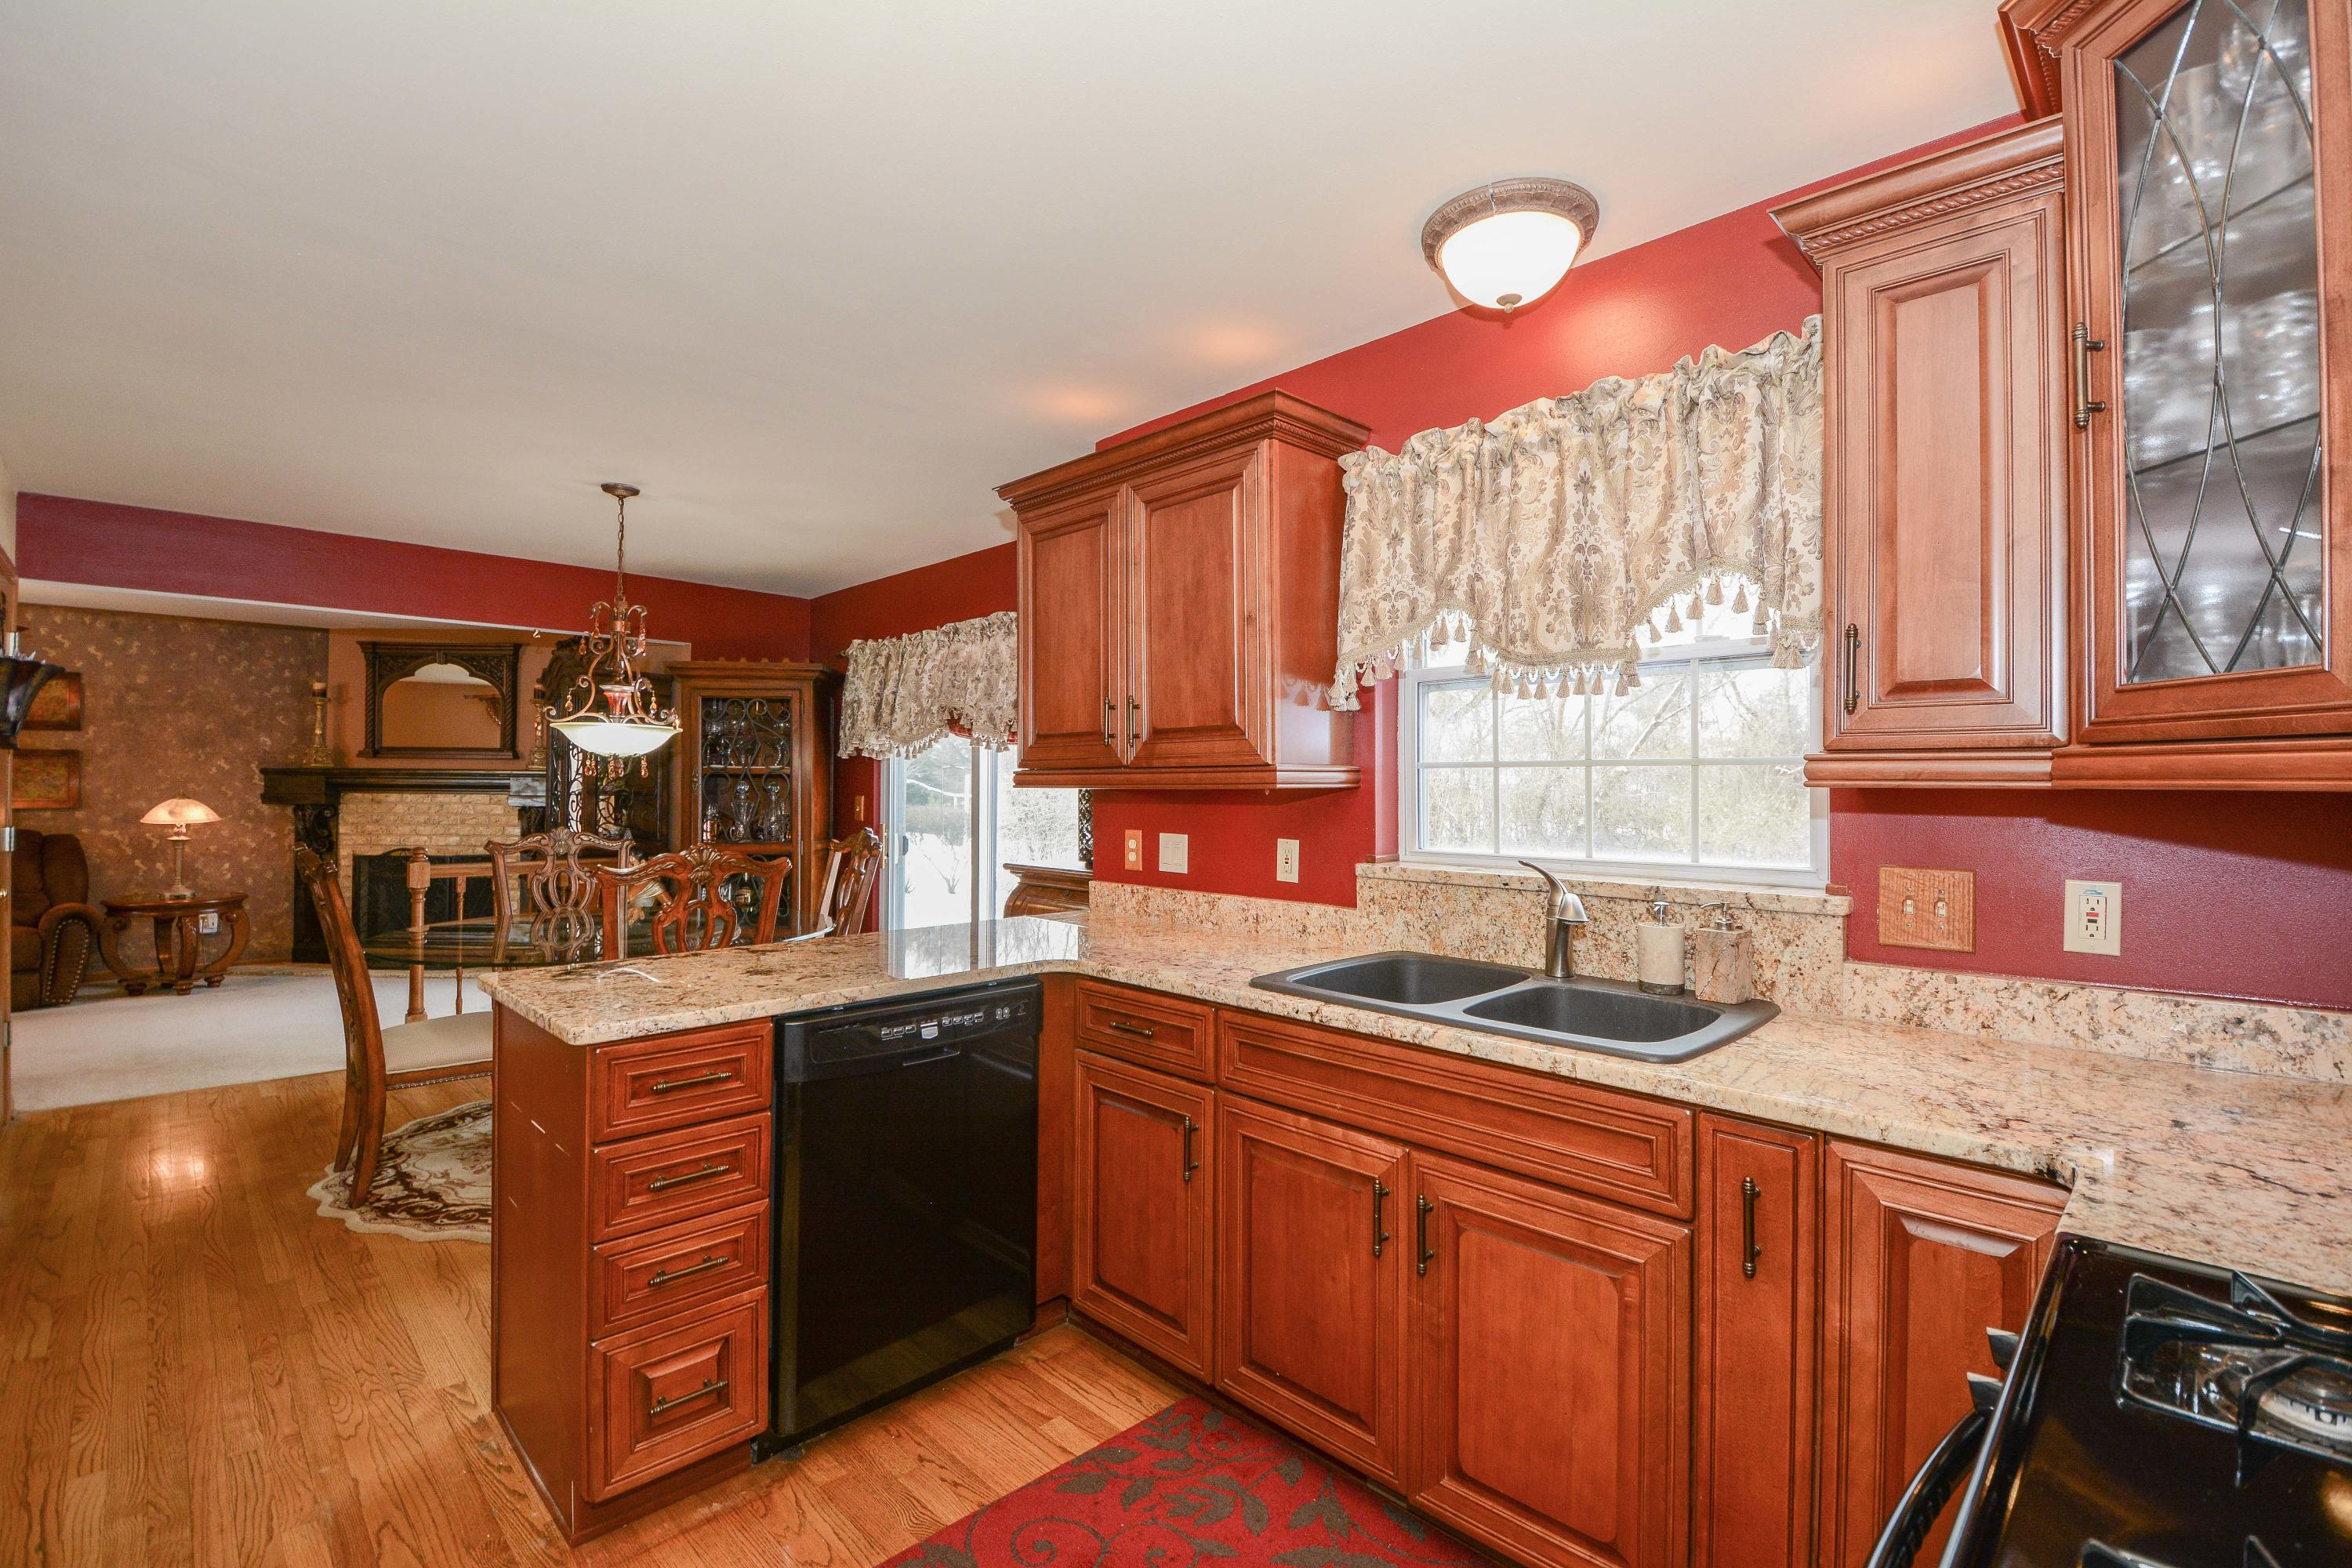 1808 Wexford Ln, Waukesha, Wisconsin 53186, 4 Bedrooms Bedrooms, 7 Rooms Rooms,2 BathroomsBathrooms,Single-Family,For Sale,Wexford Ln,1615301